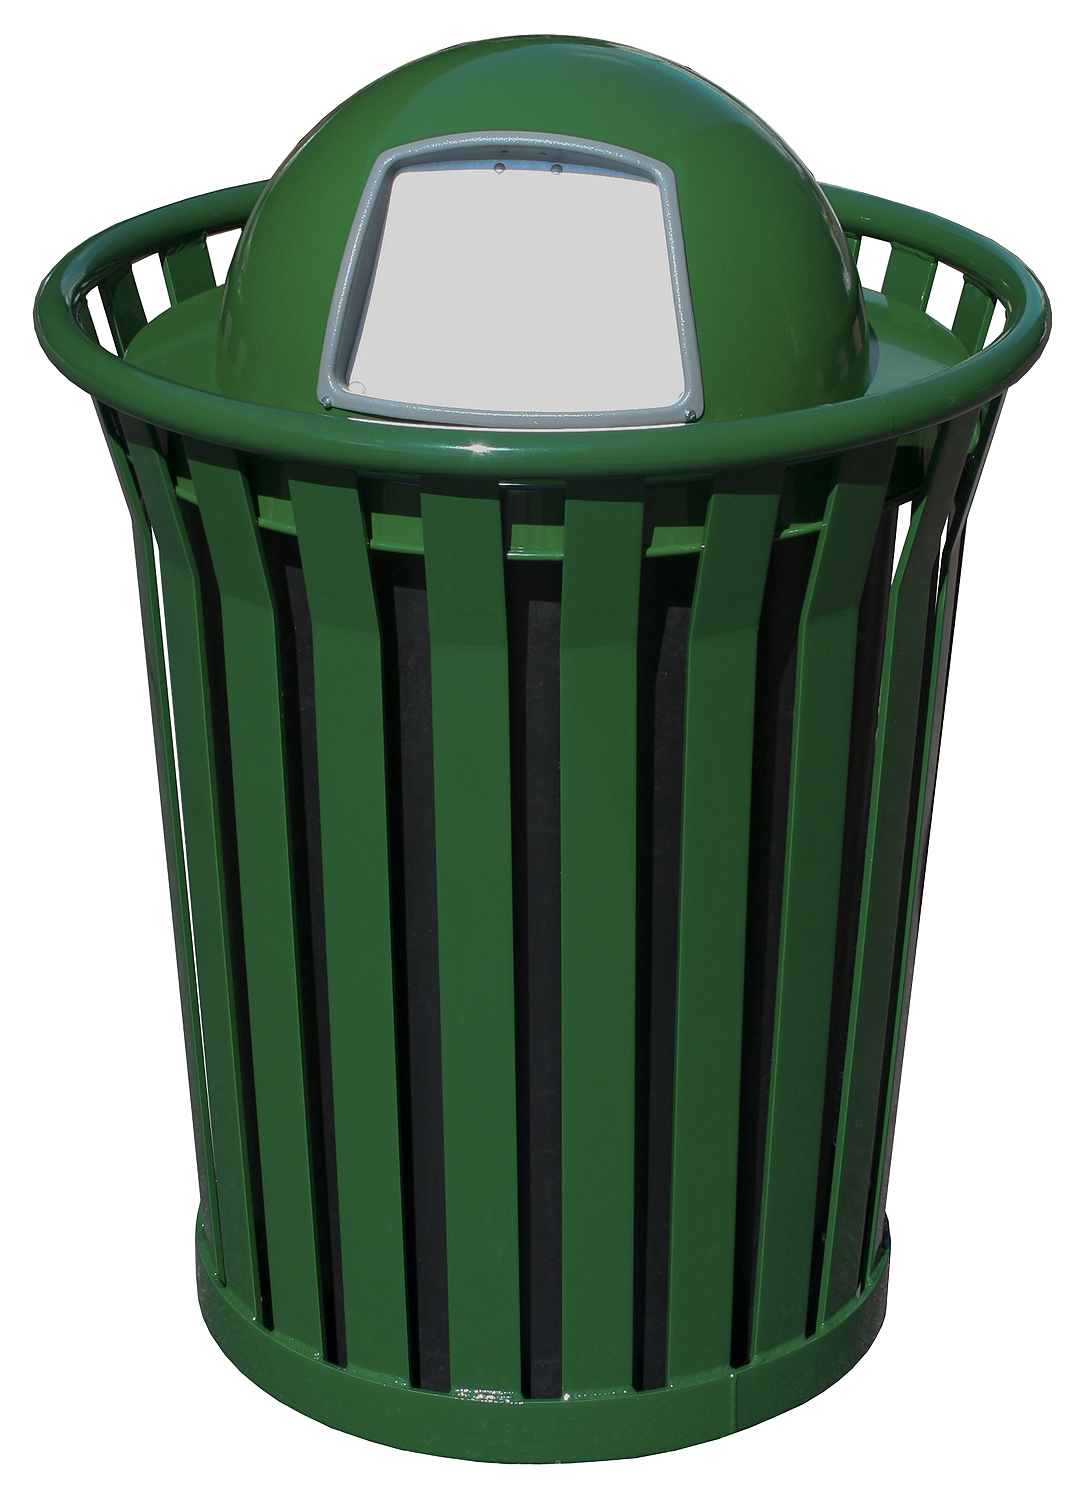 Wydman 36 Gallon Slatted Trash Receptacle Trashcans